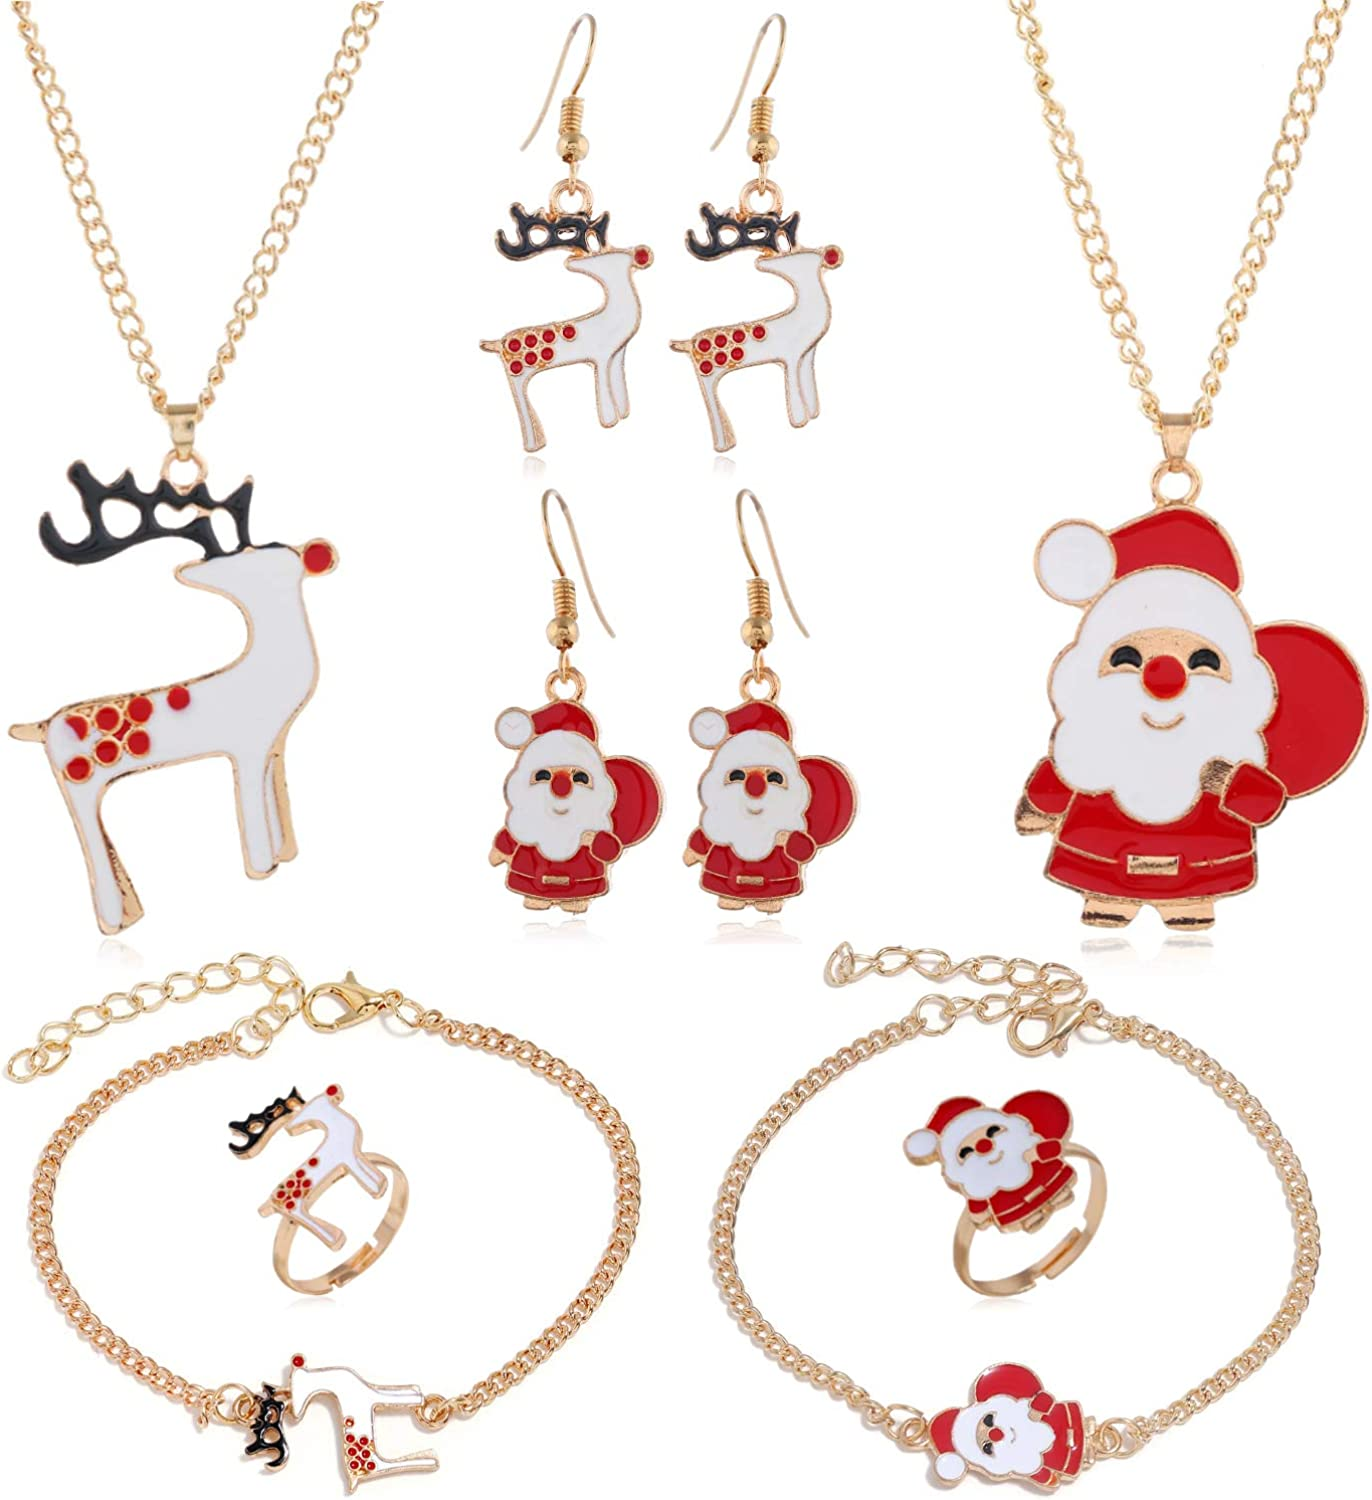 8Pcs Christmas Gold Jewelry Sets Santa Claus Elk Tree Bell Ring Necklace Earrings Bracelet Set for Women Girls Xmas Fashion Gifts